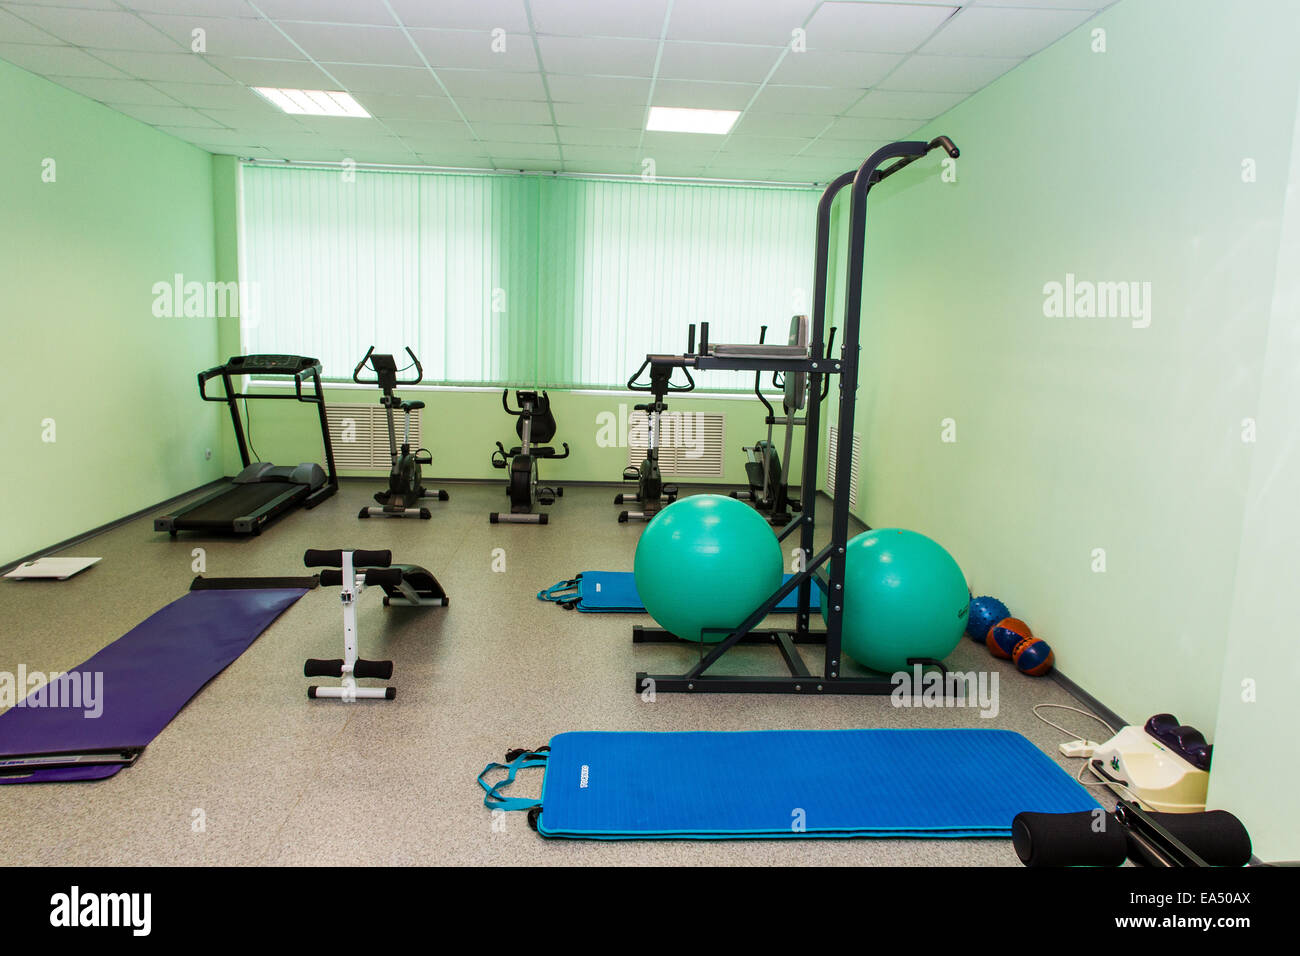 Gym Rooms Stock Photos & Gym Rooms Stock Images - Alamy